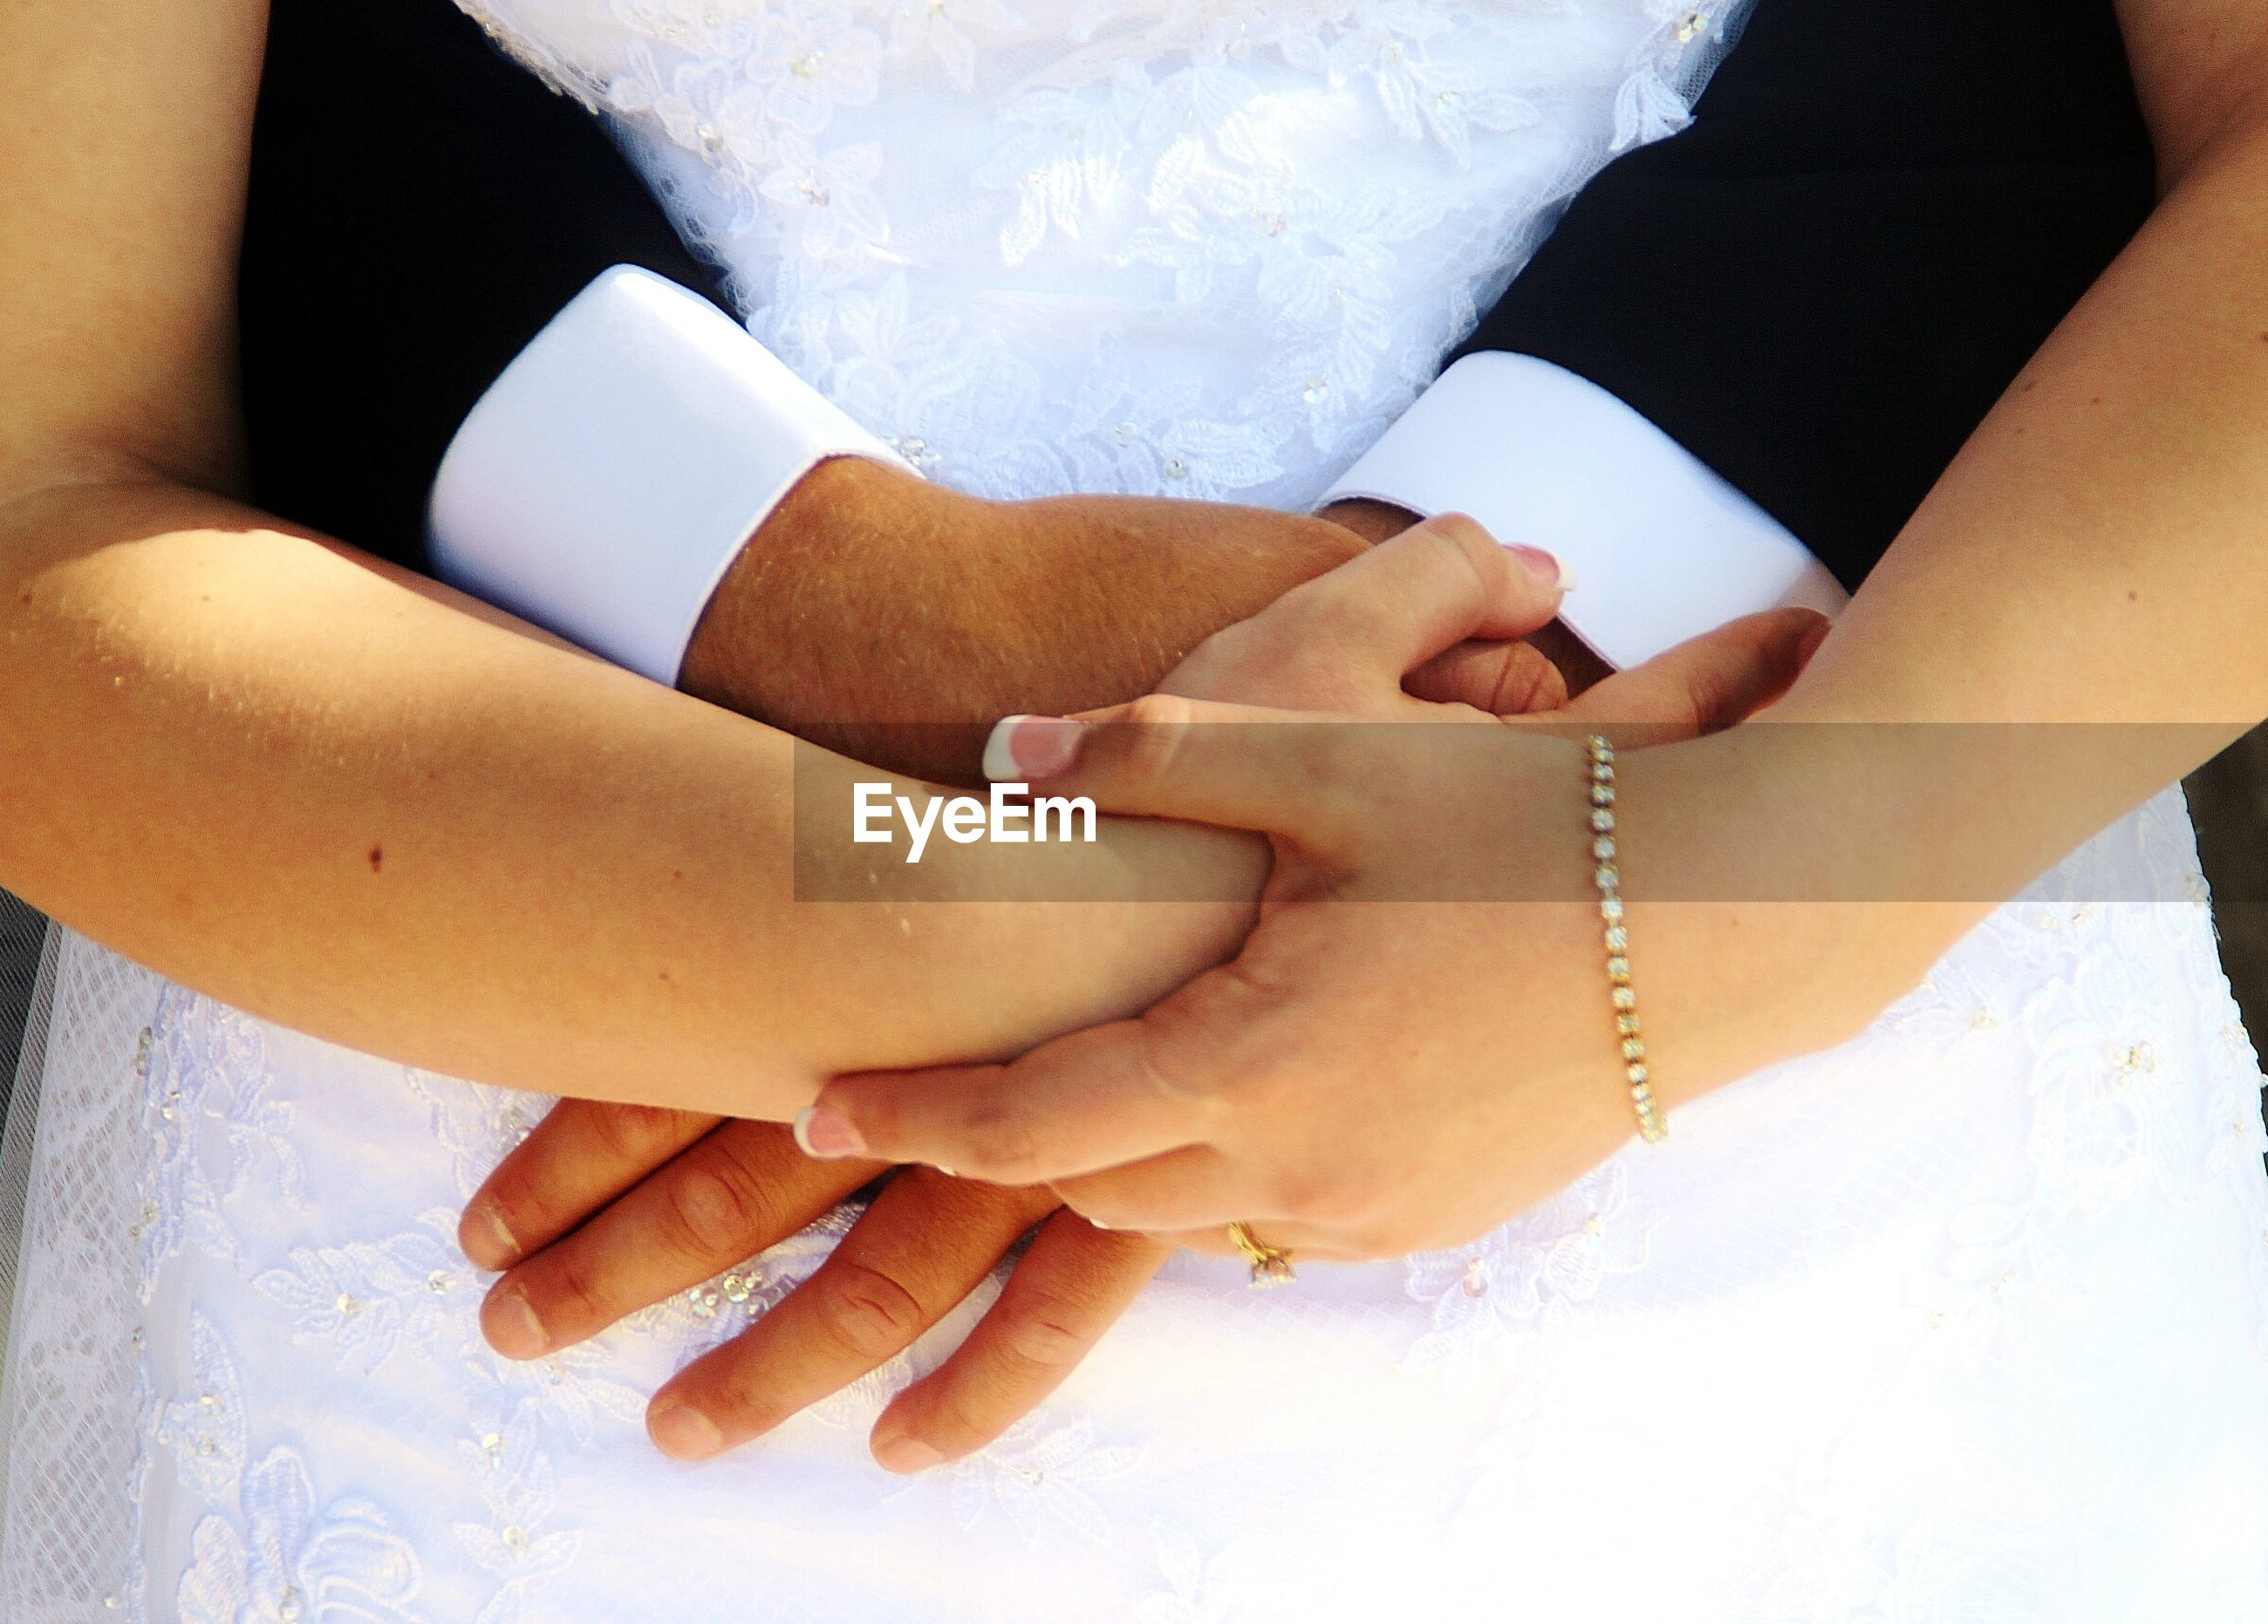 bride, human hand, togetherness, love, wedding, men, women, bridegroom, wedding dress, bonding, real people, two people, celebration, groom, couple - relationship, life events, midsection, holding, human body part, wedding ceremony, wife, close-up, day, outdoors, adult, people